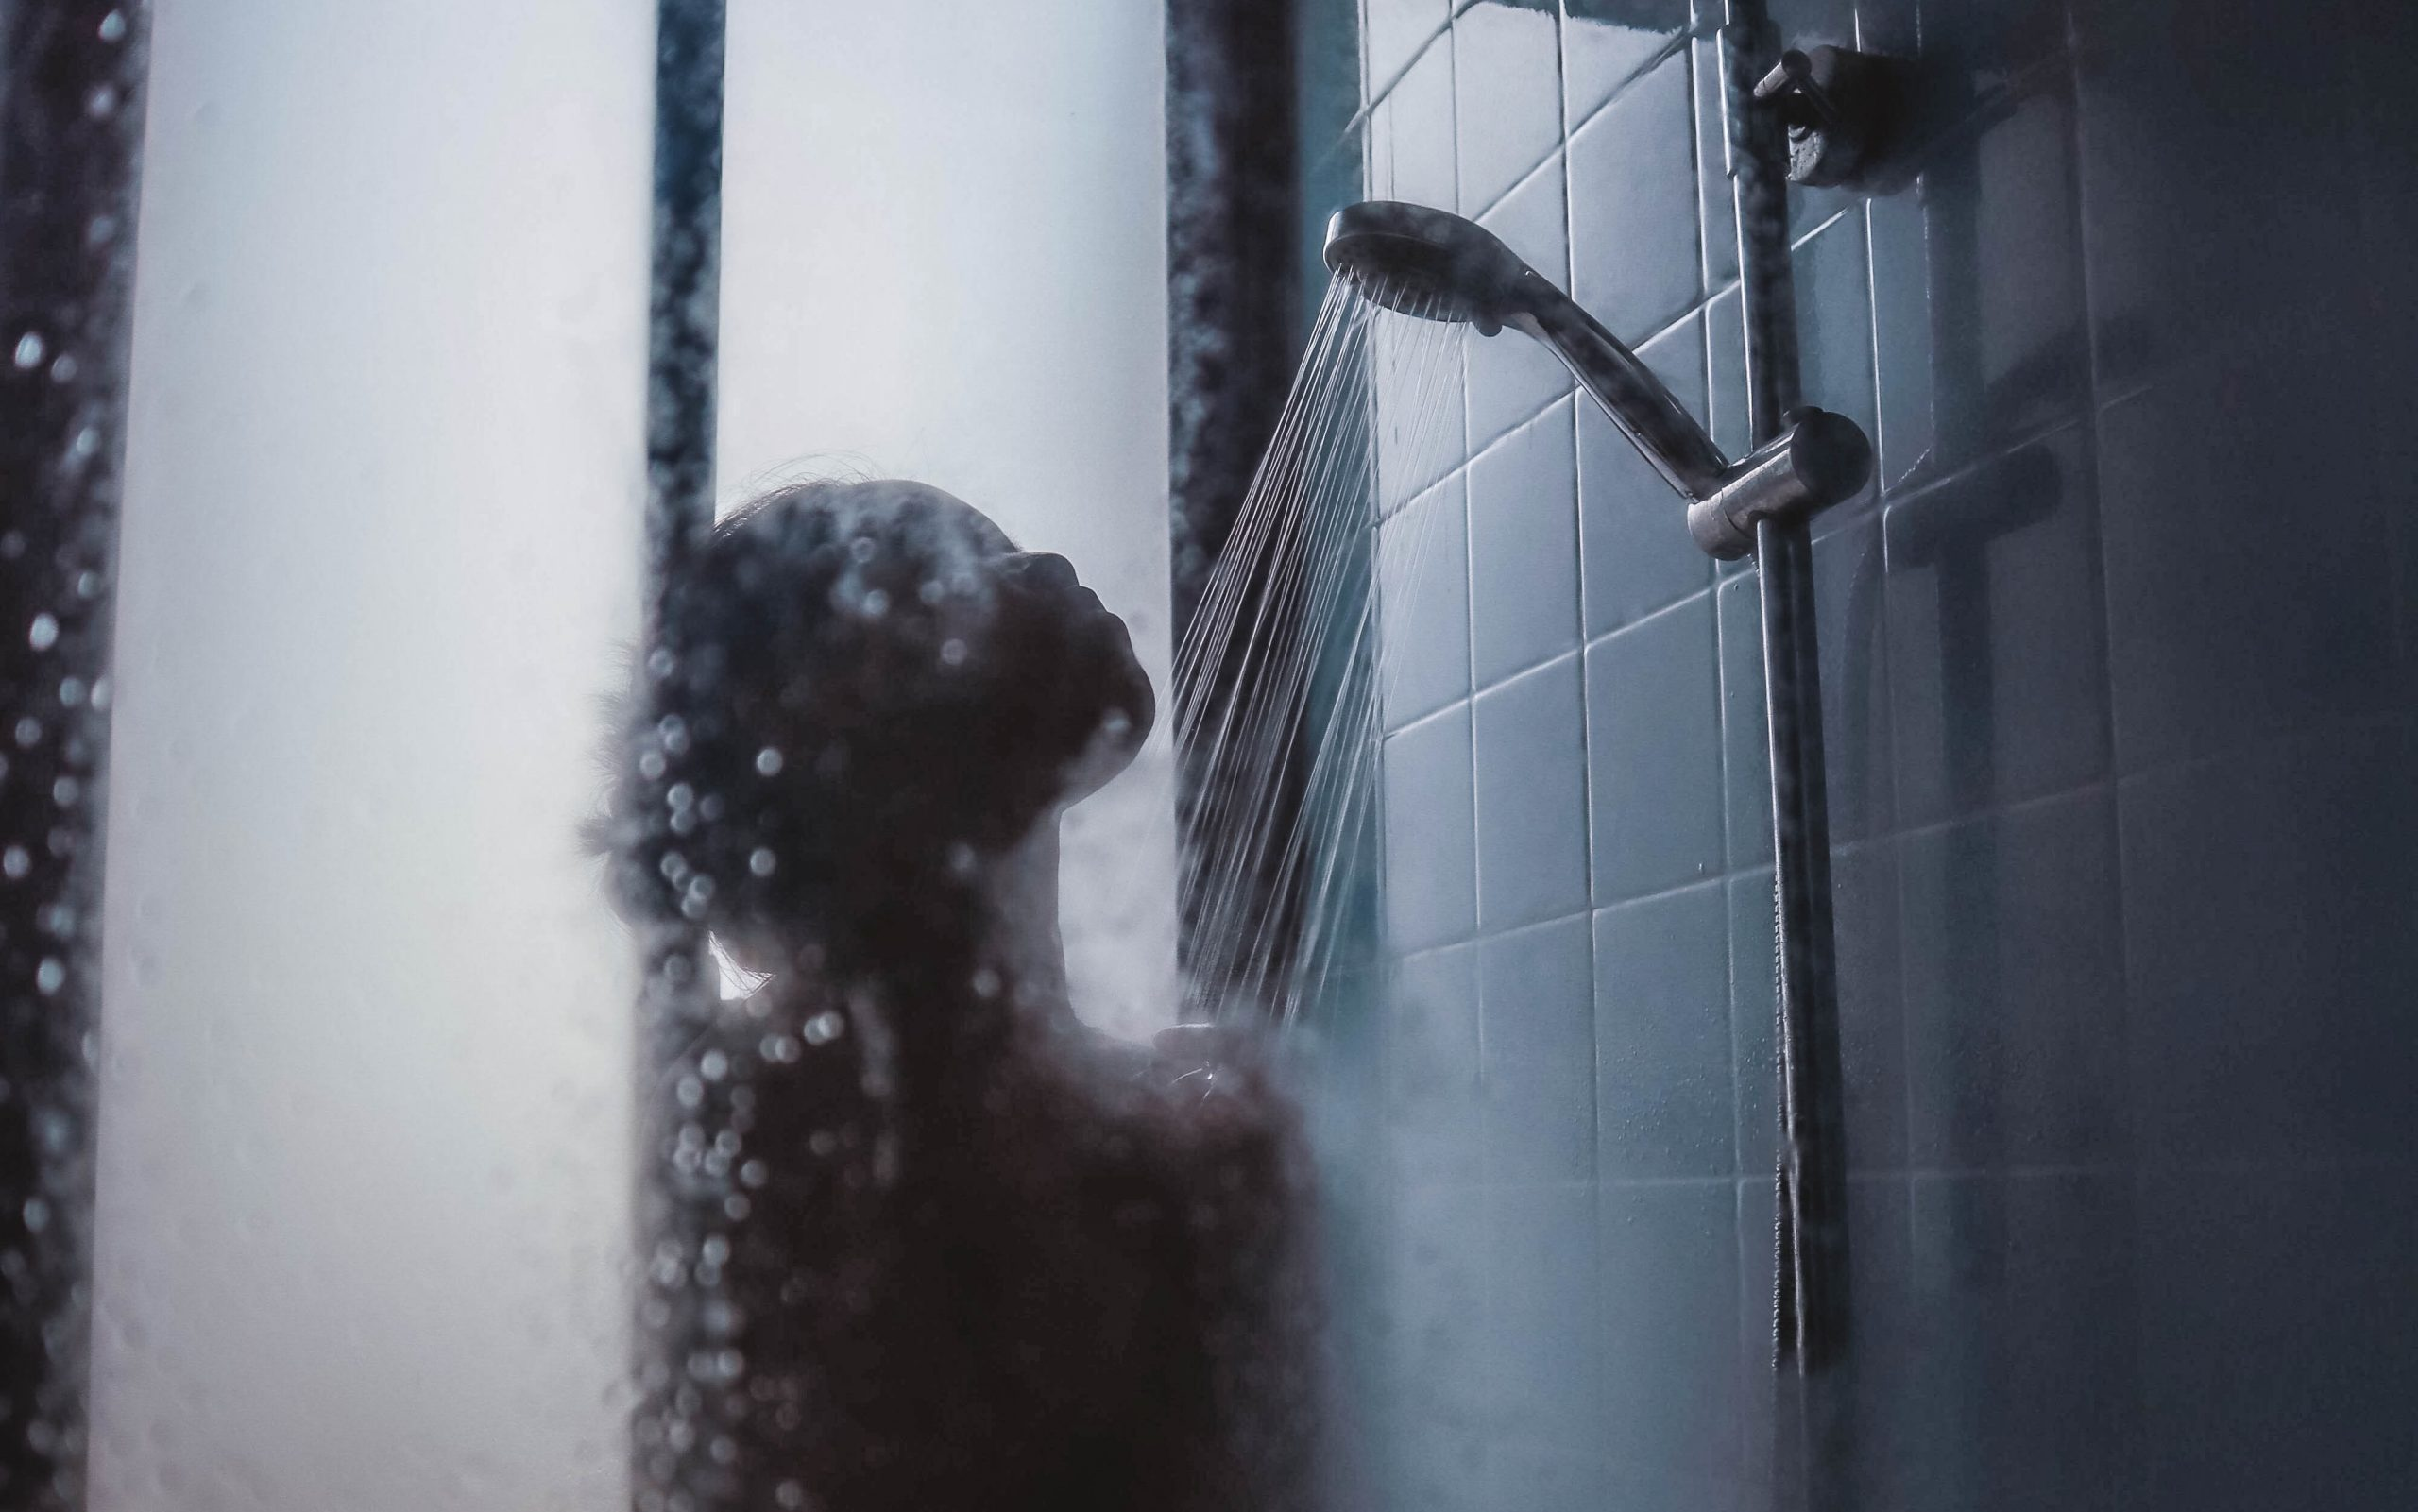 person in shower